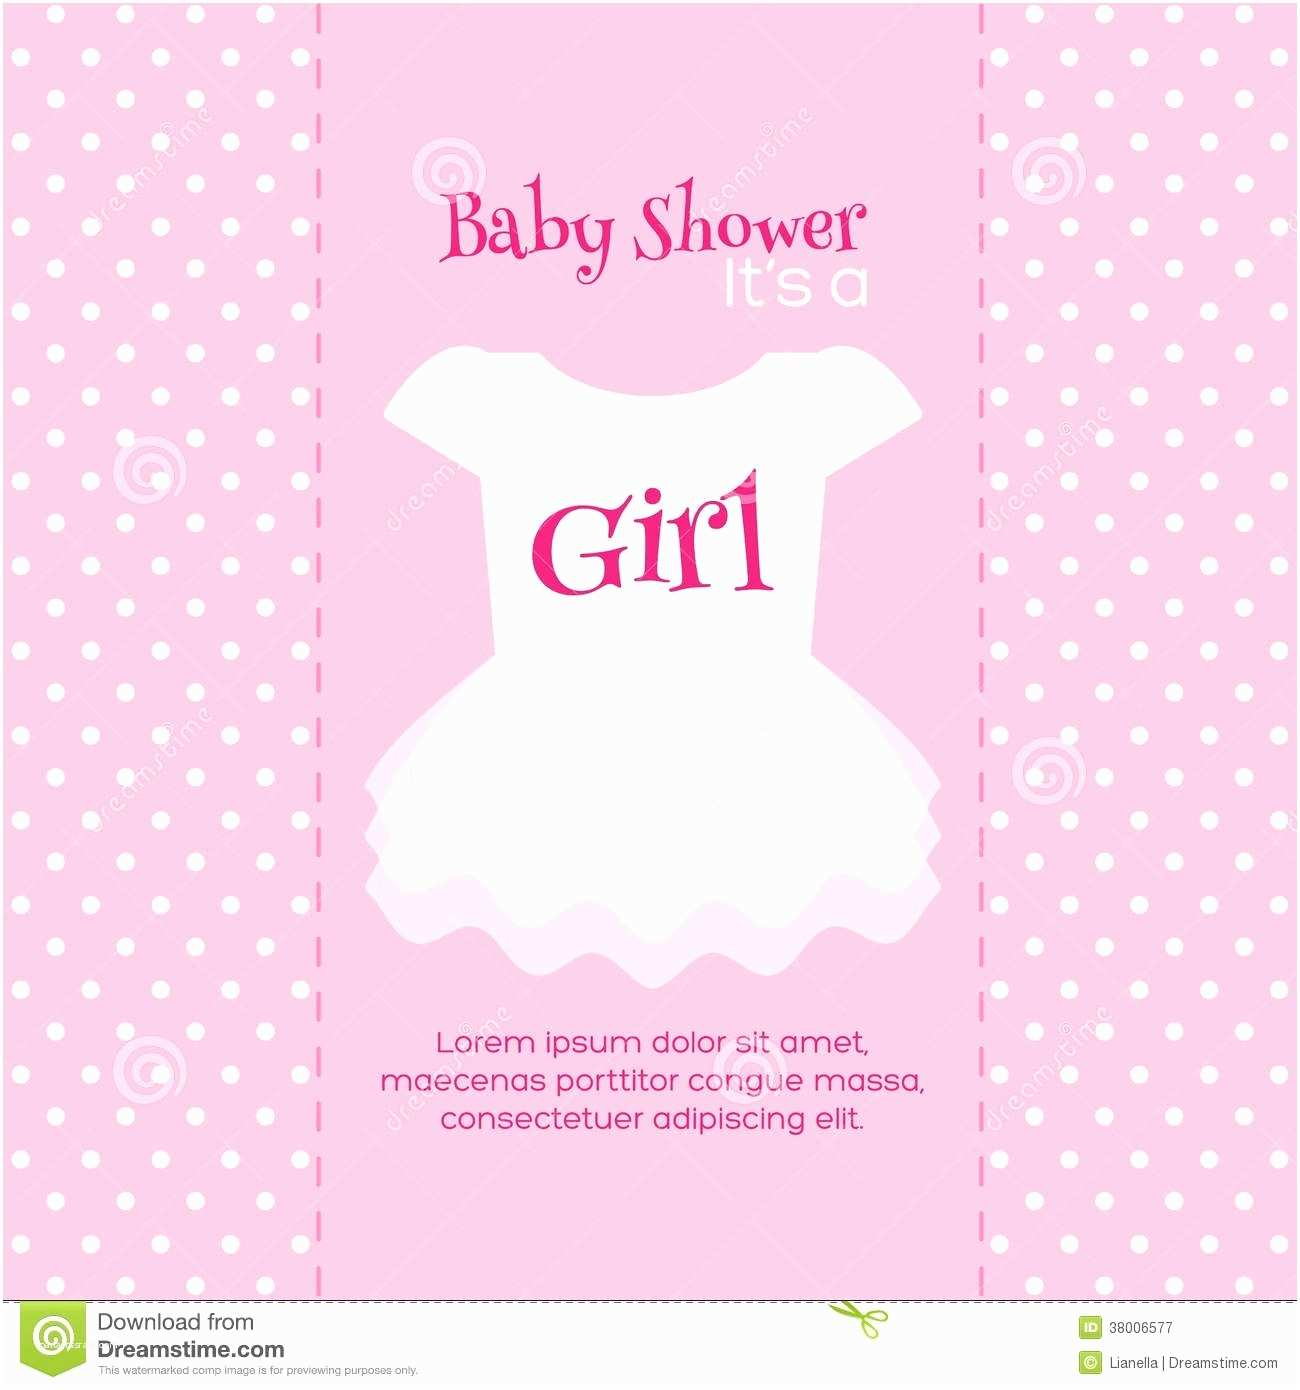 Baby Shower Invitations Online Free Baby Shower Invitations Templates Template Resume